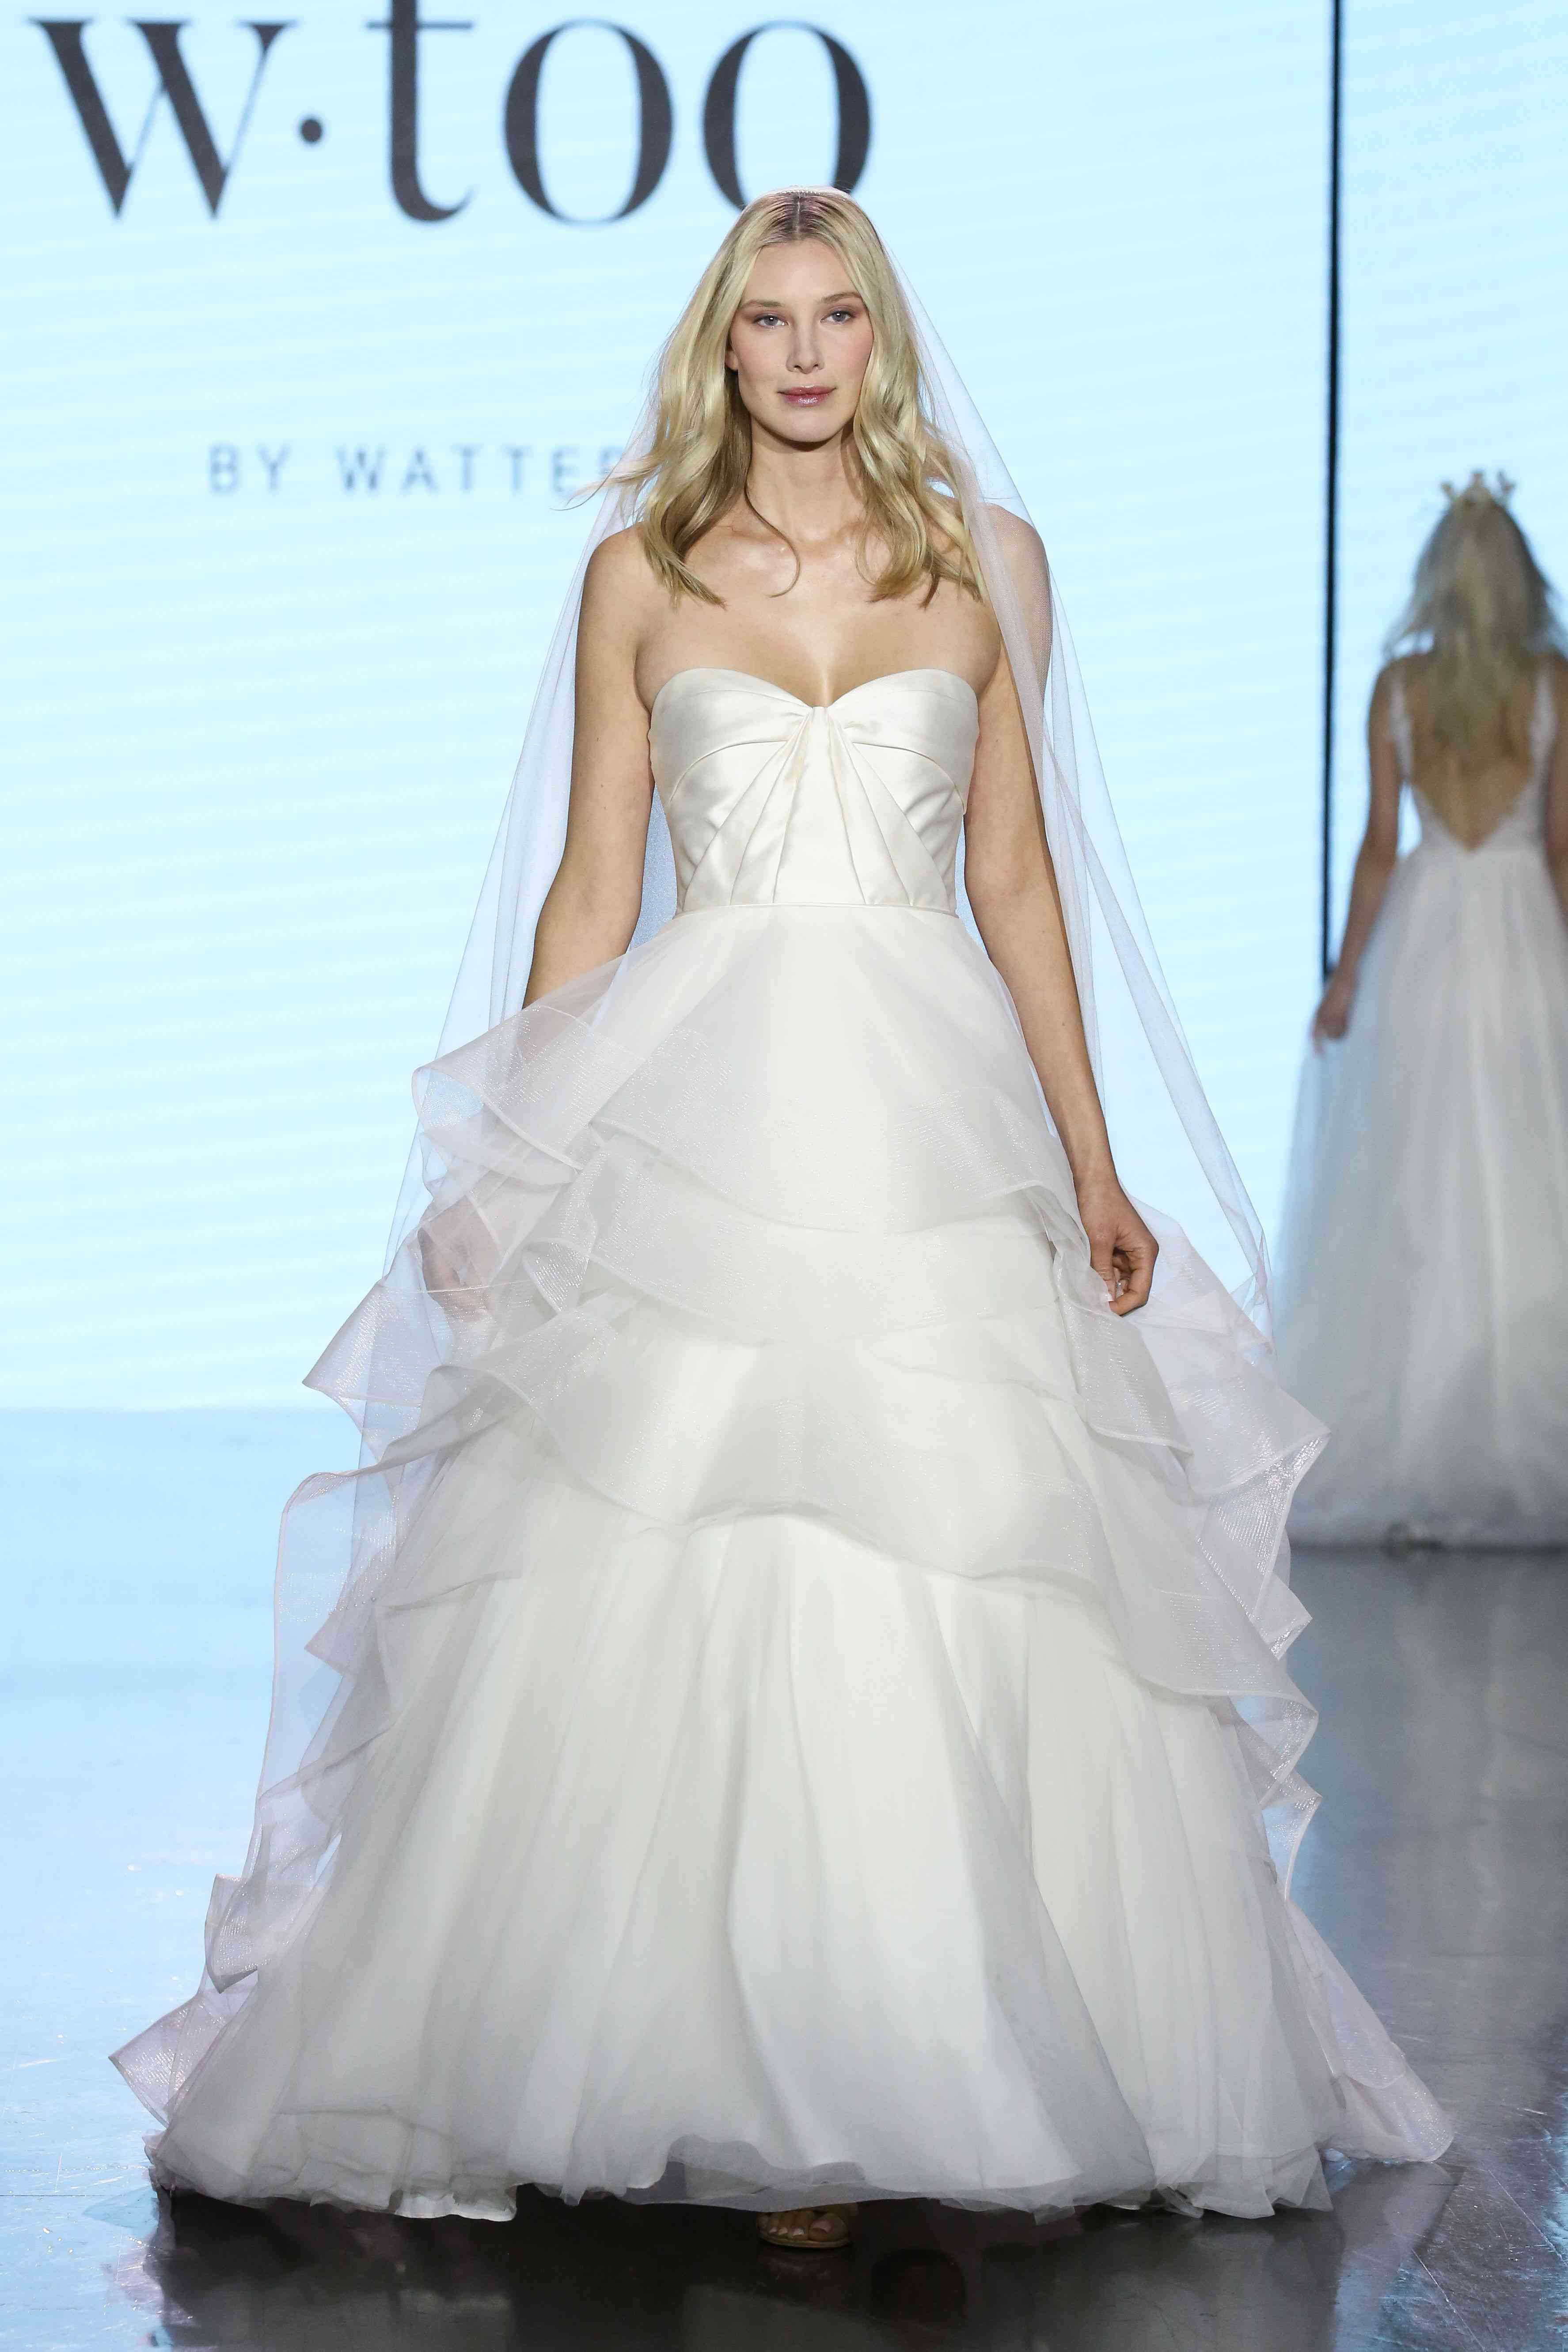 Model in strapless ballgown with a ruched satin bodice and a multi-tiered organza skirt